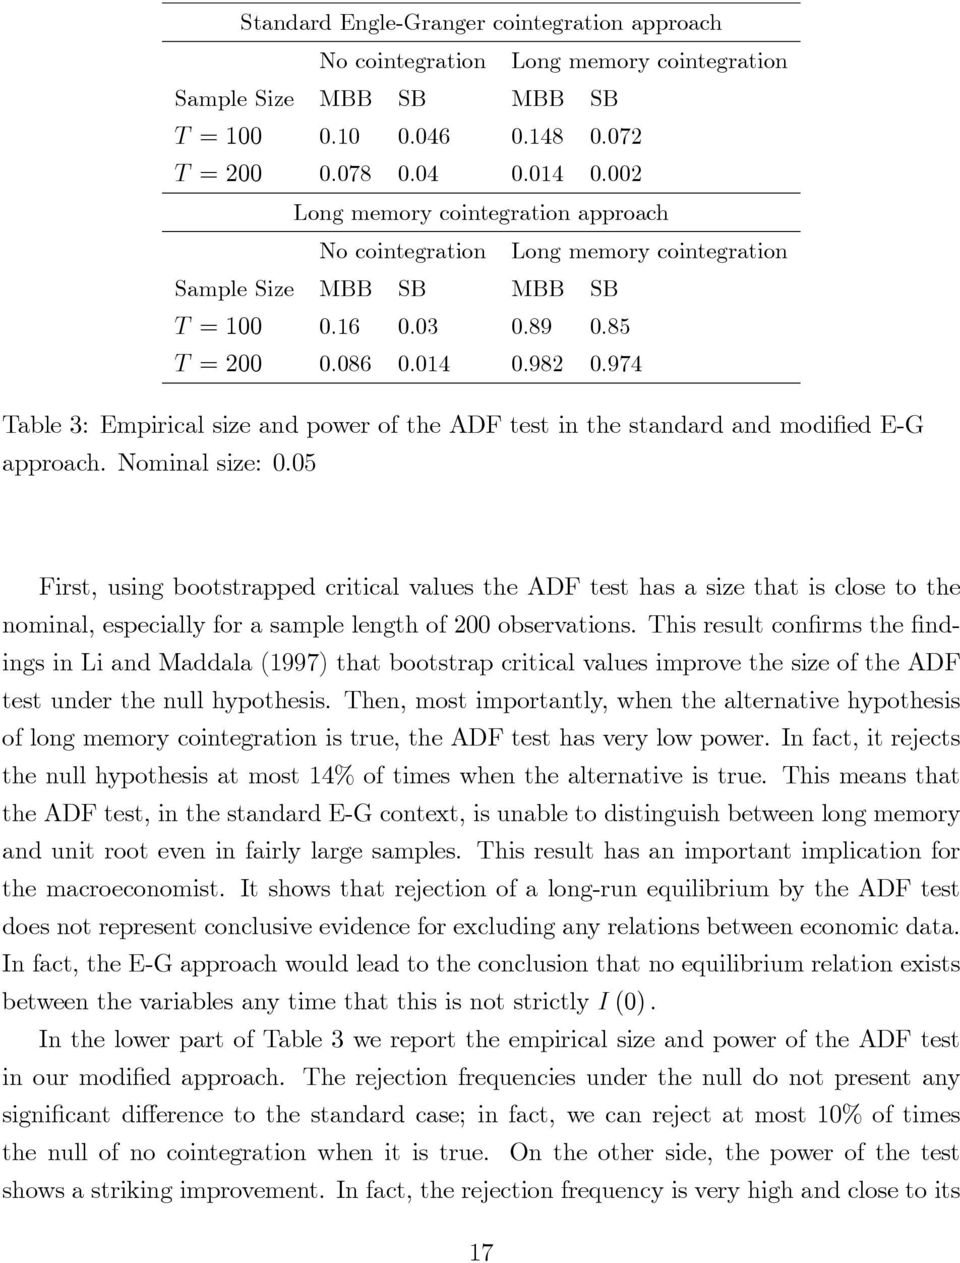 974 Table 3: Empirical size and power of the ADF test in the standard and modi ed E-G approach. Nominal size: 0.